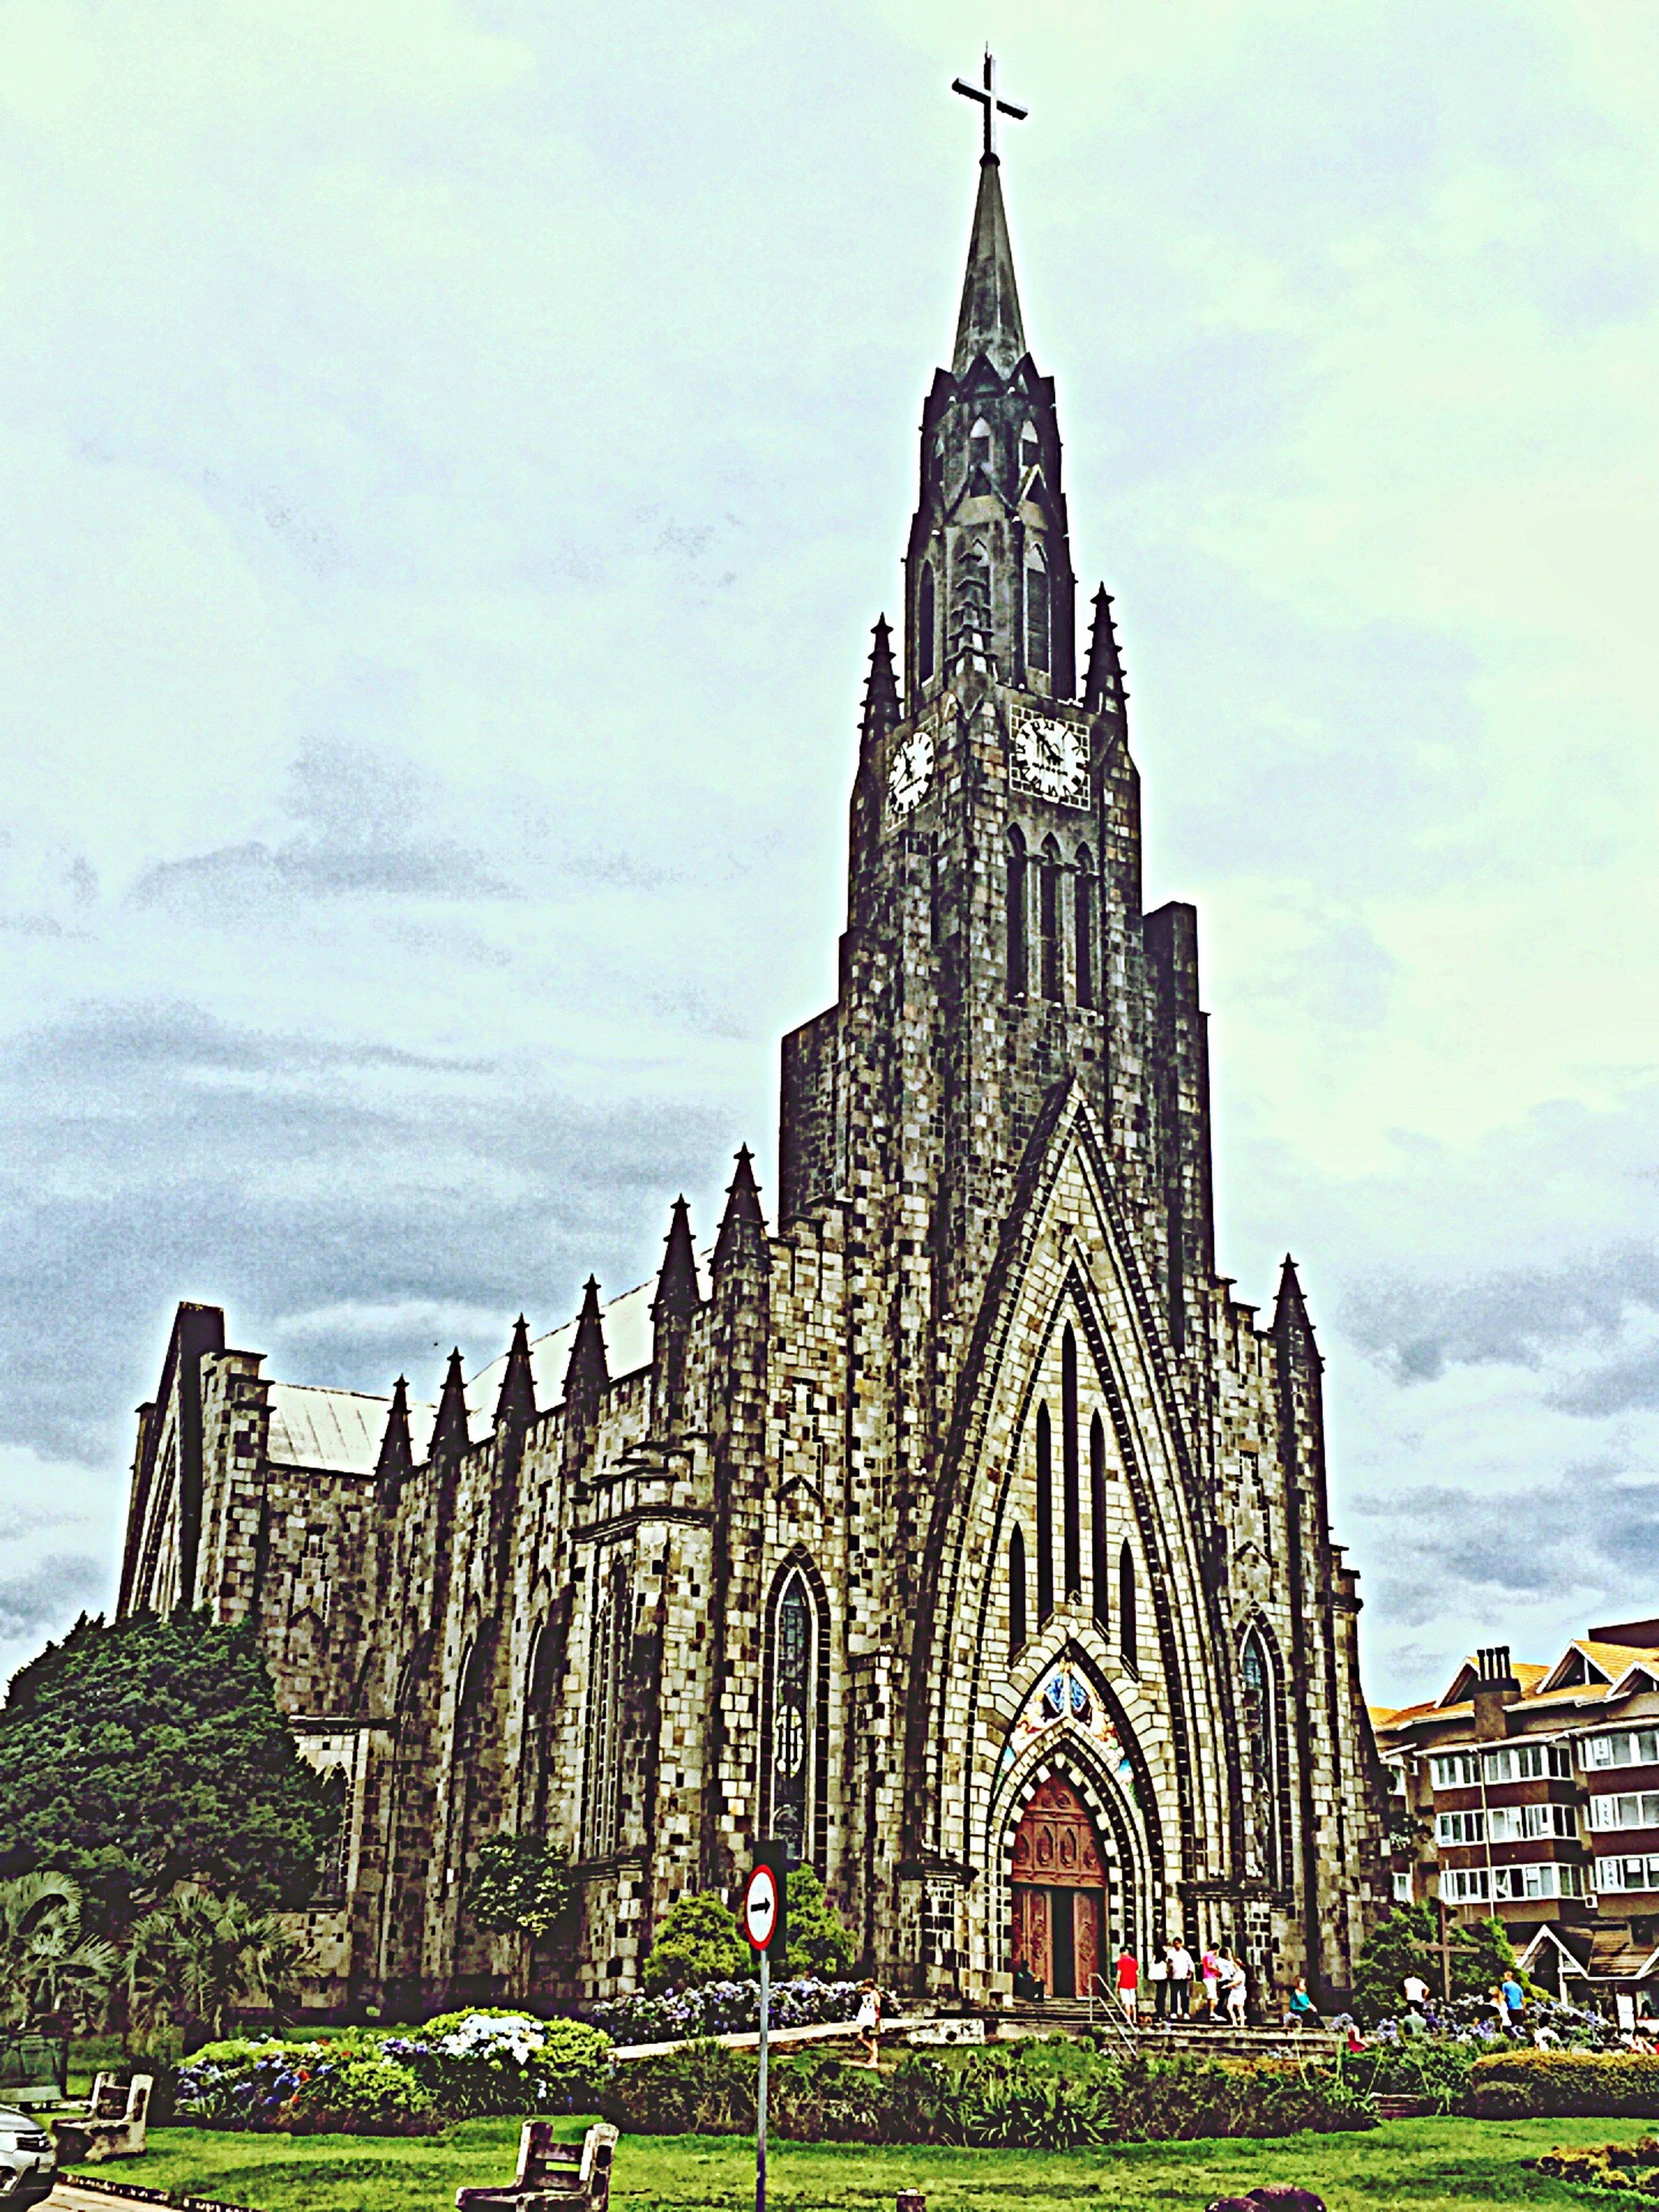 religion, place of worship, architecture, spirituality, building exterior, built structure, church, famous place, cathedral, travel destinations, sky, travel, tourism, low angle view, history, day, facade, tree